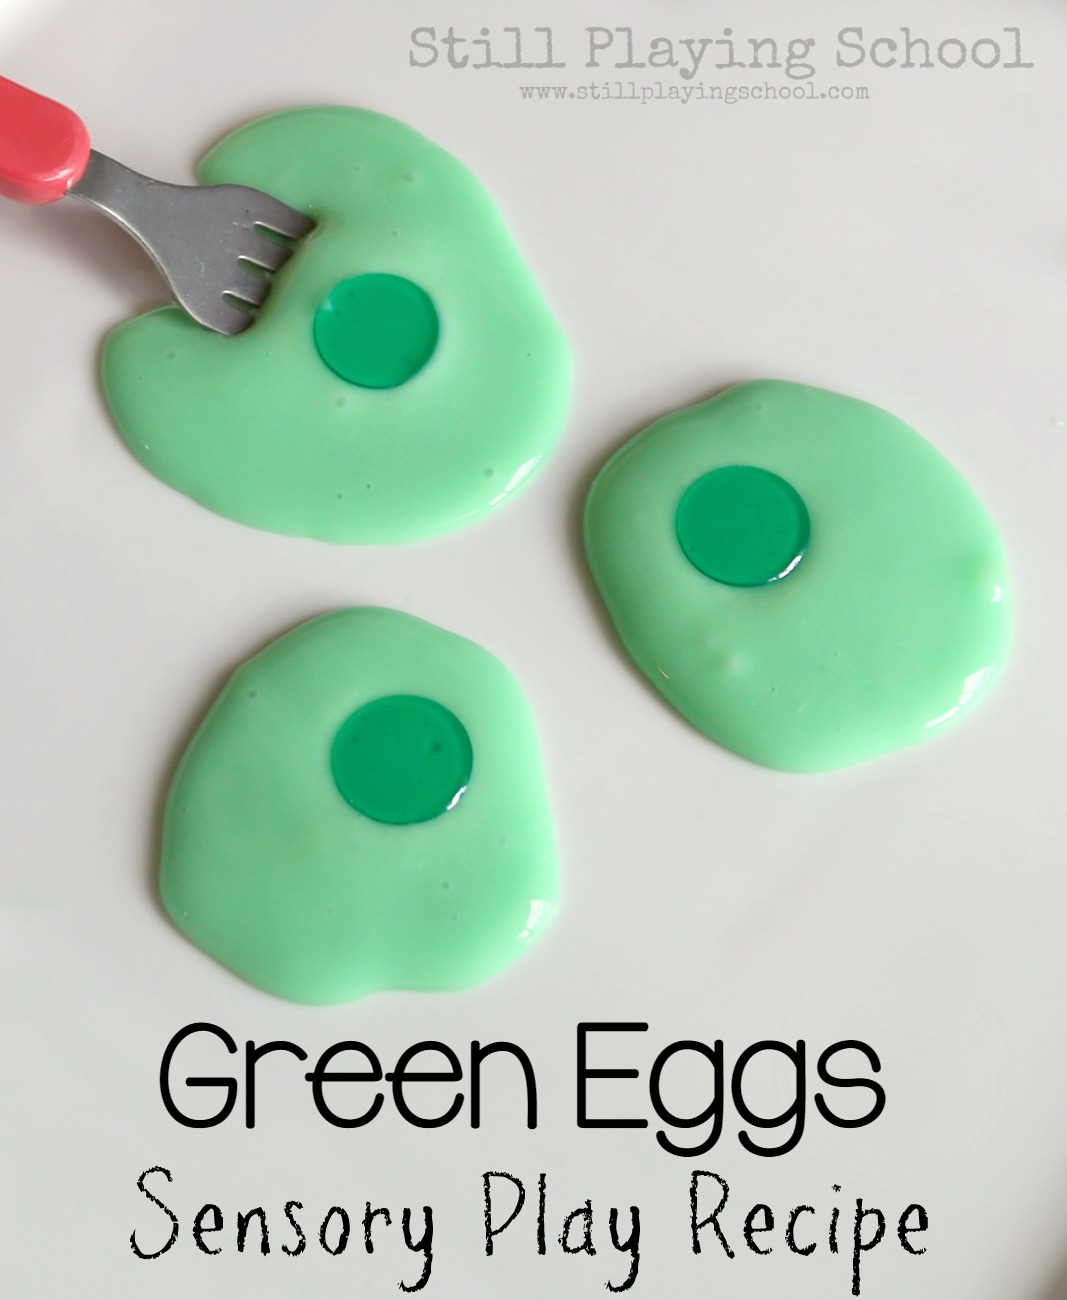 Green Eggs Sensory Play